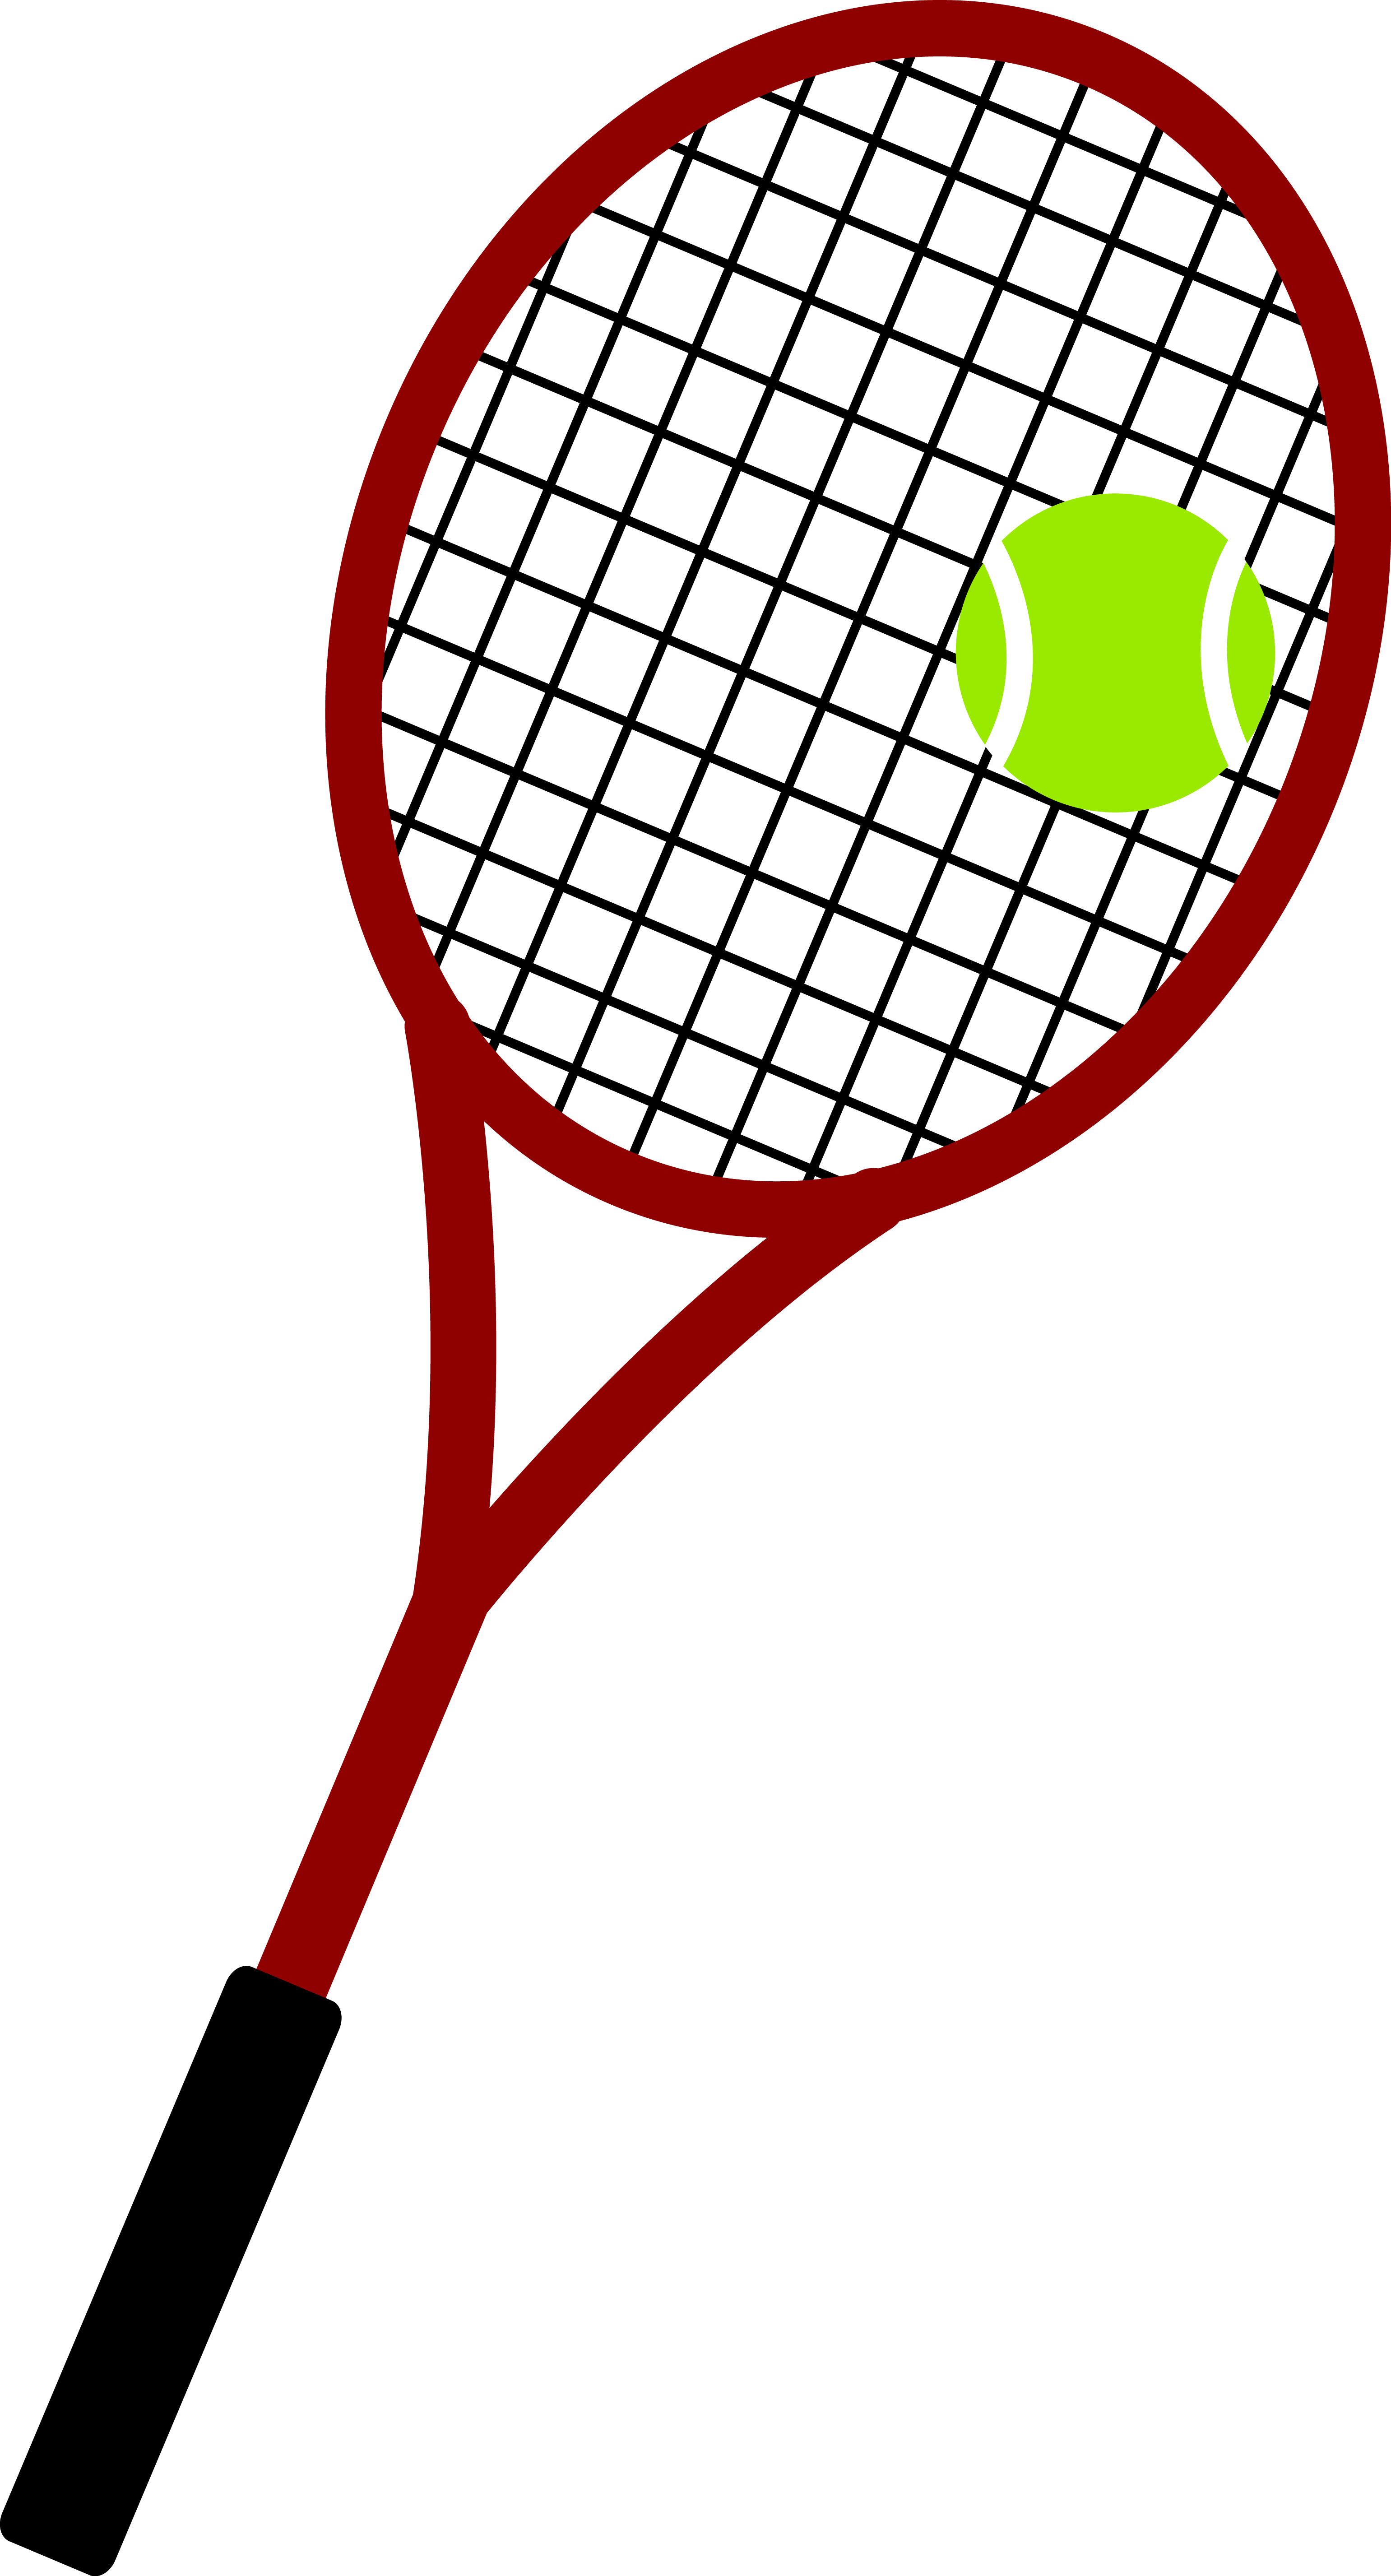 Racket and ball free. Guy clipart tennis